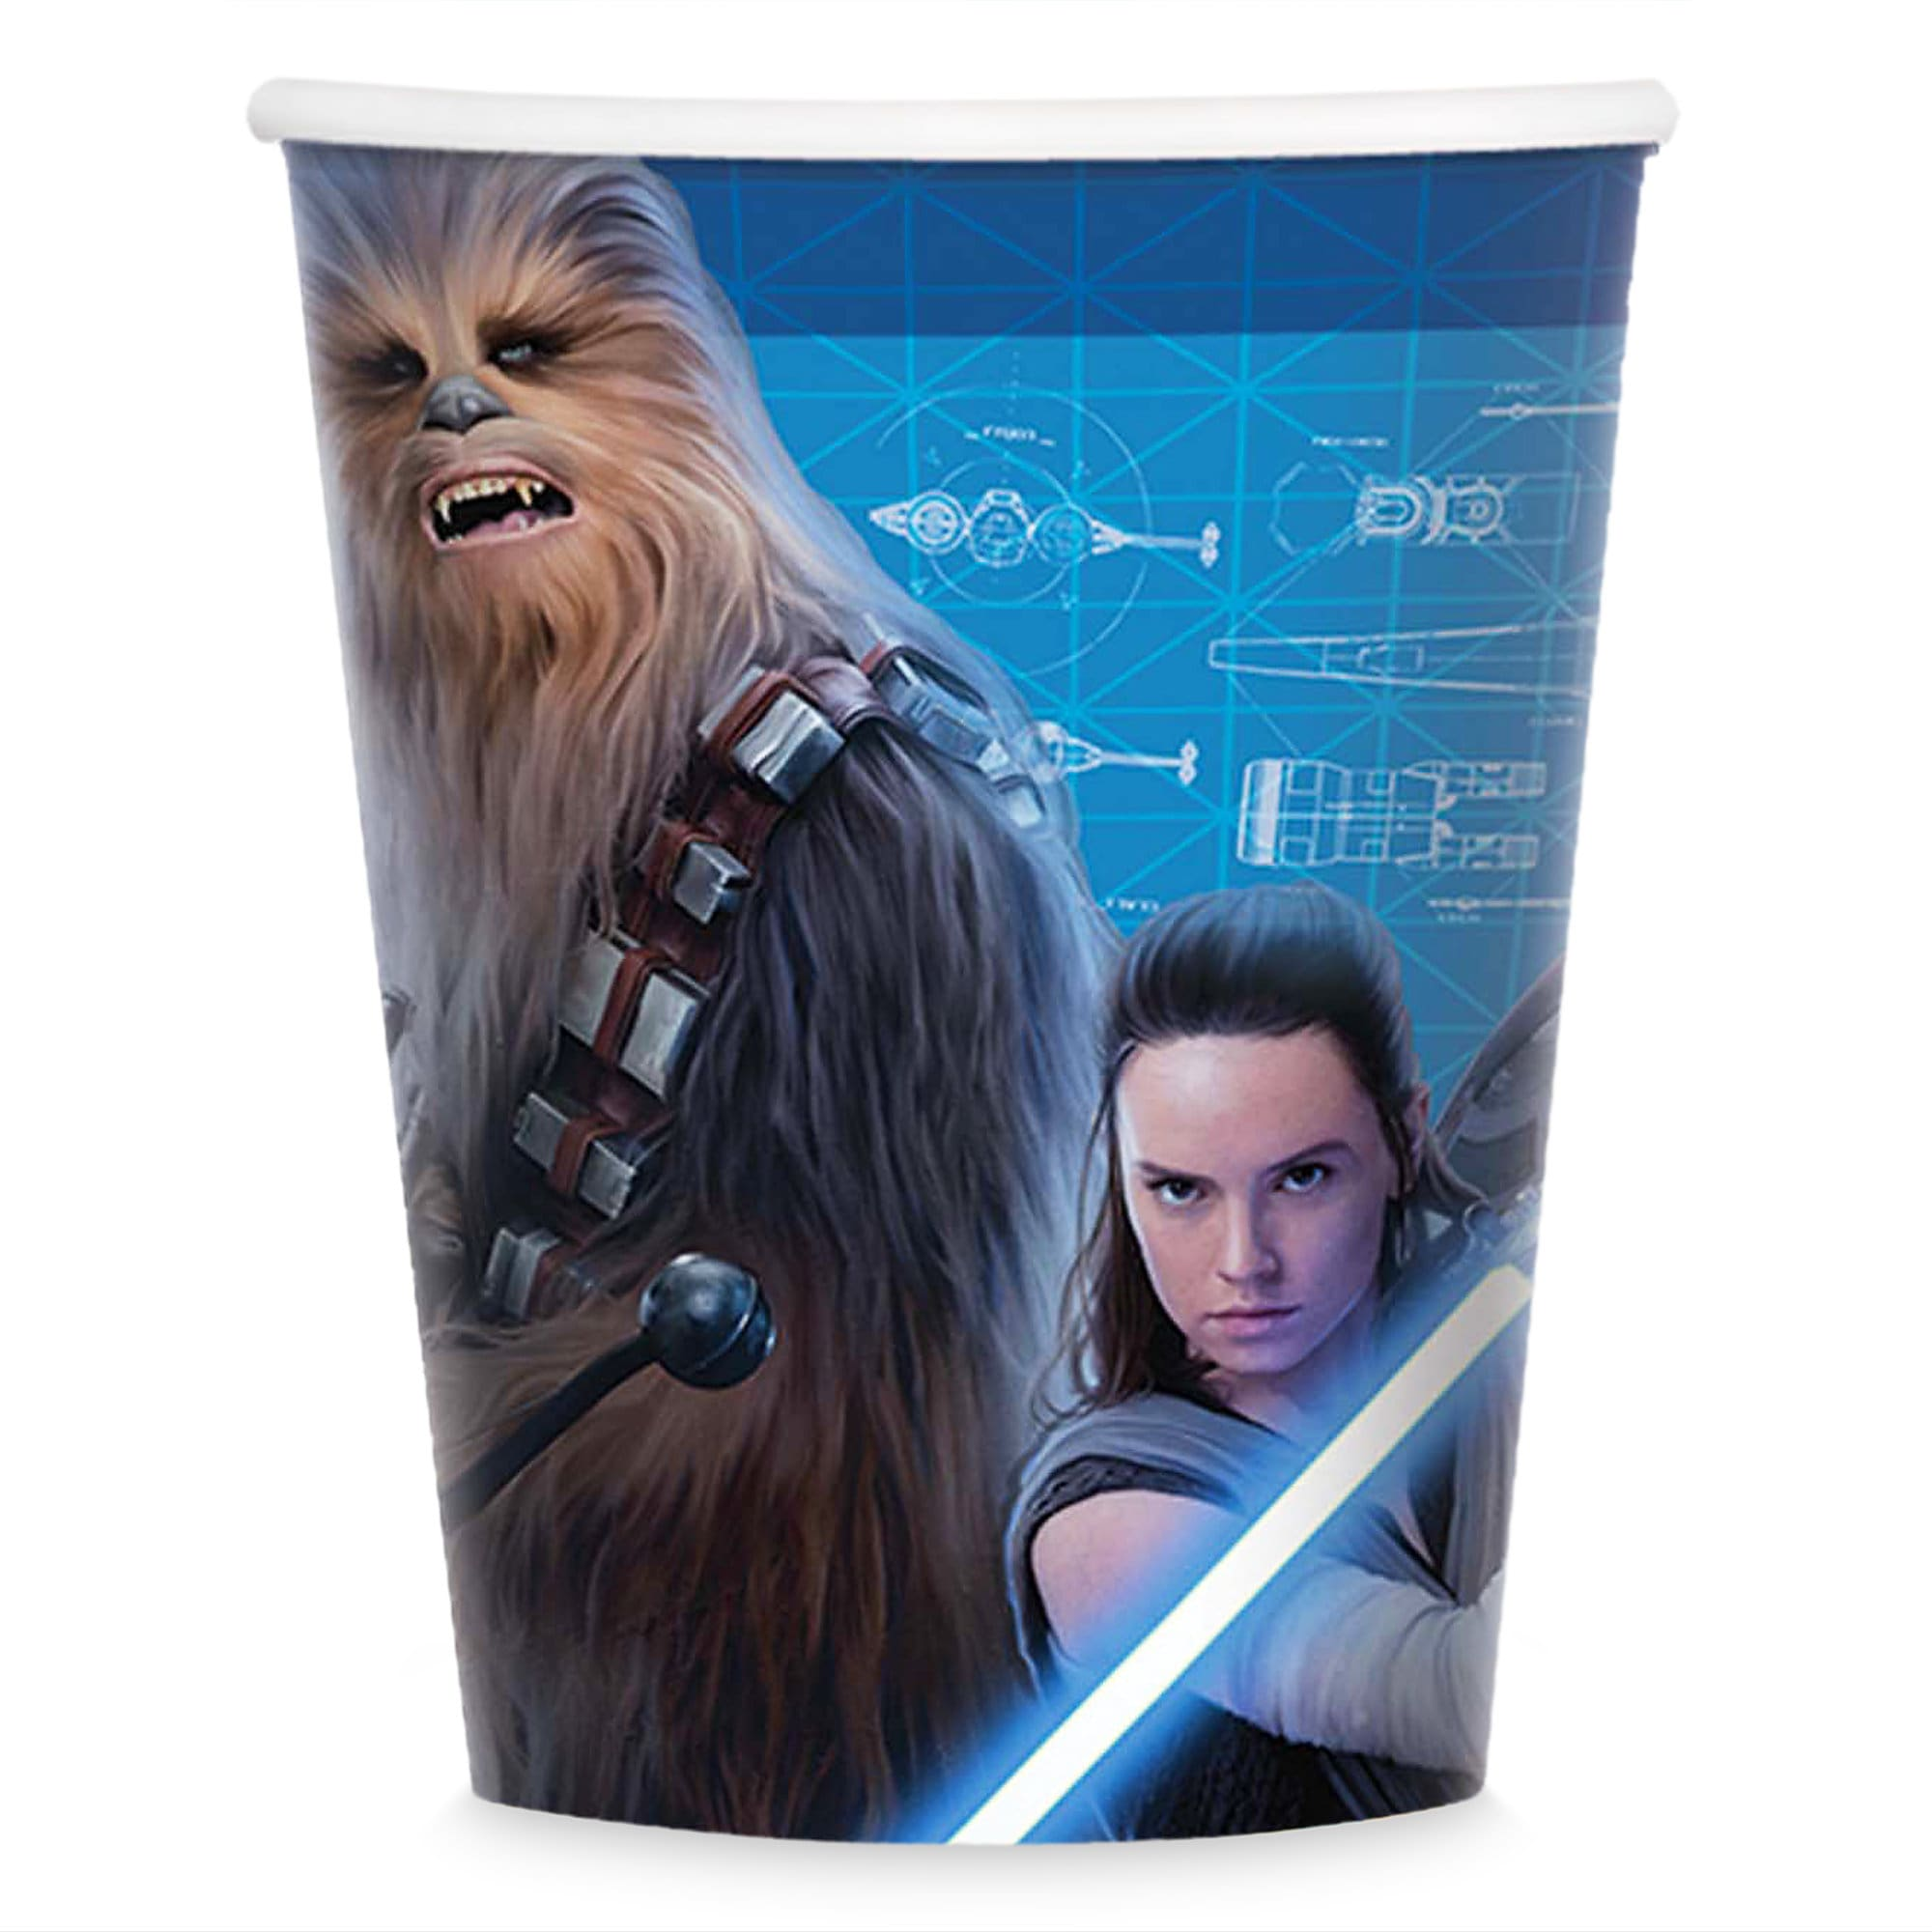 Star Wars: The Last Jedi Paper Cups